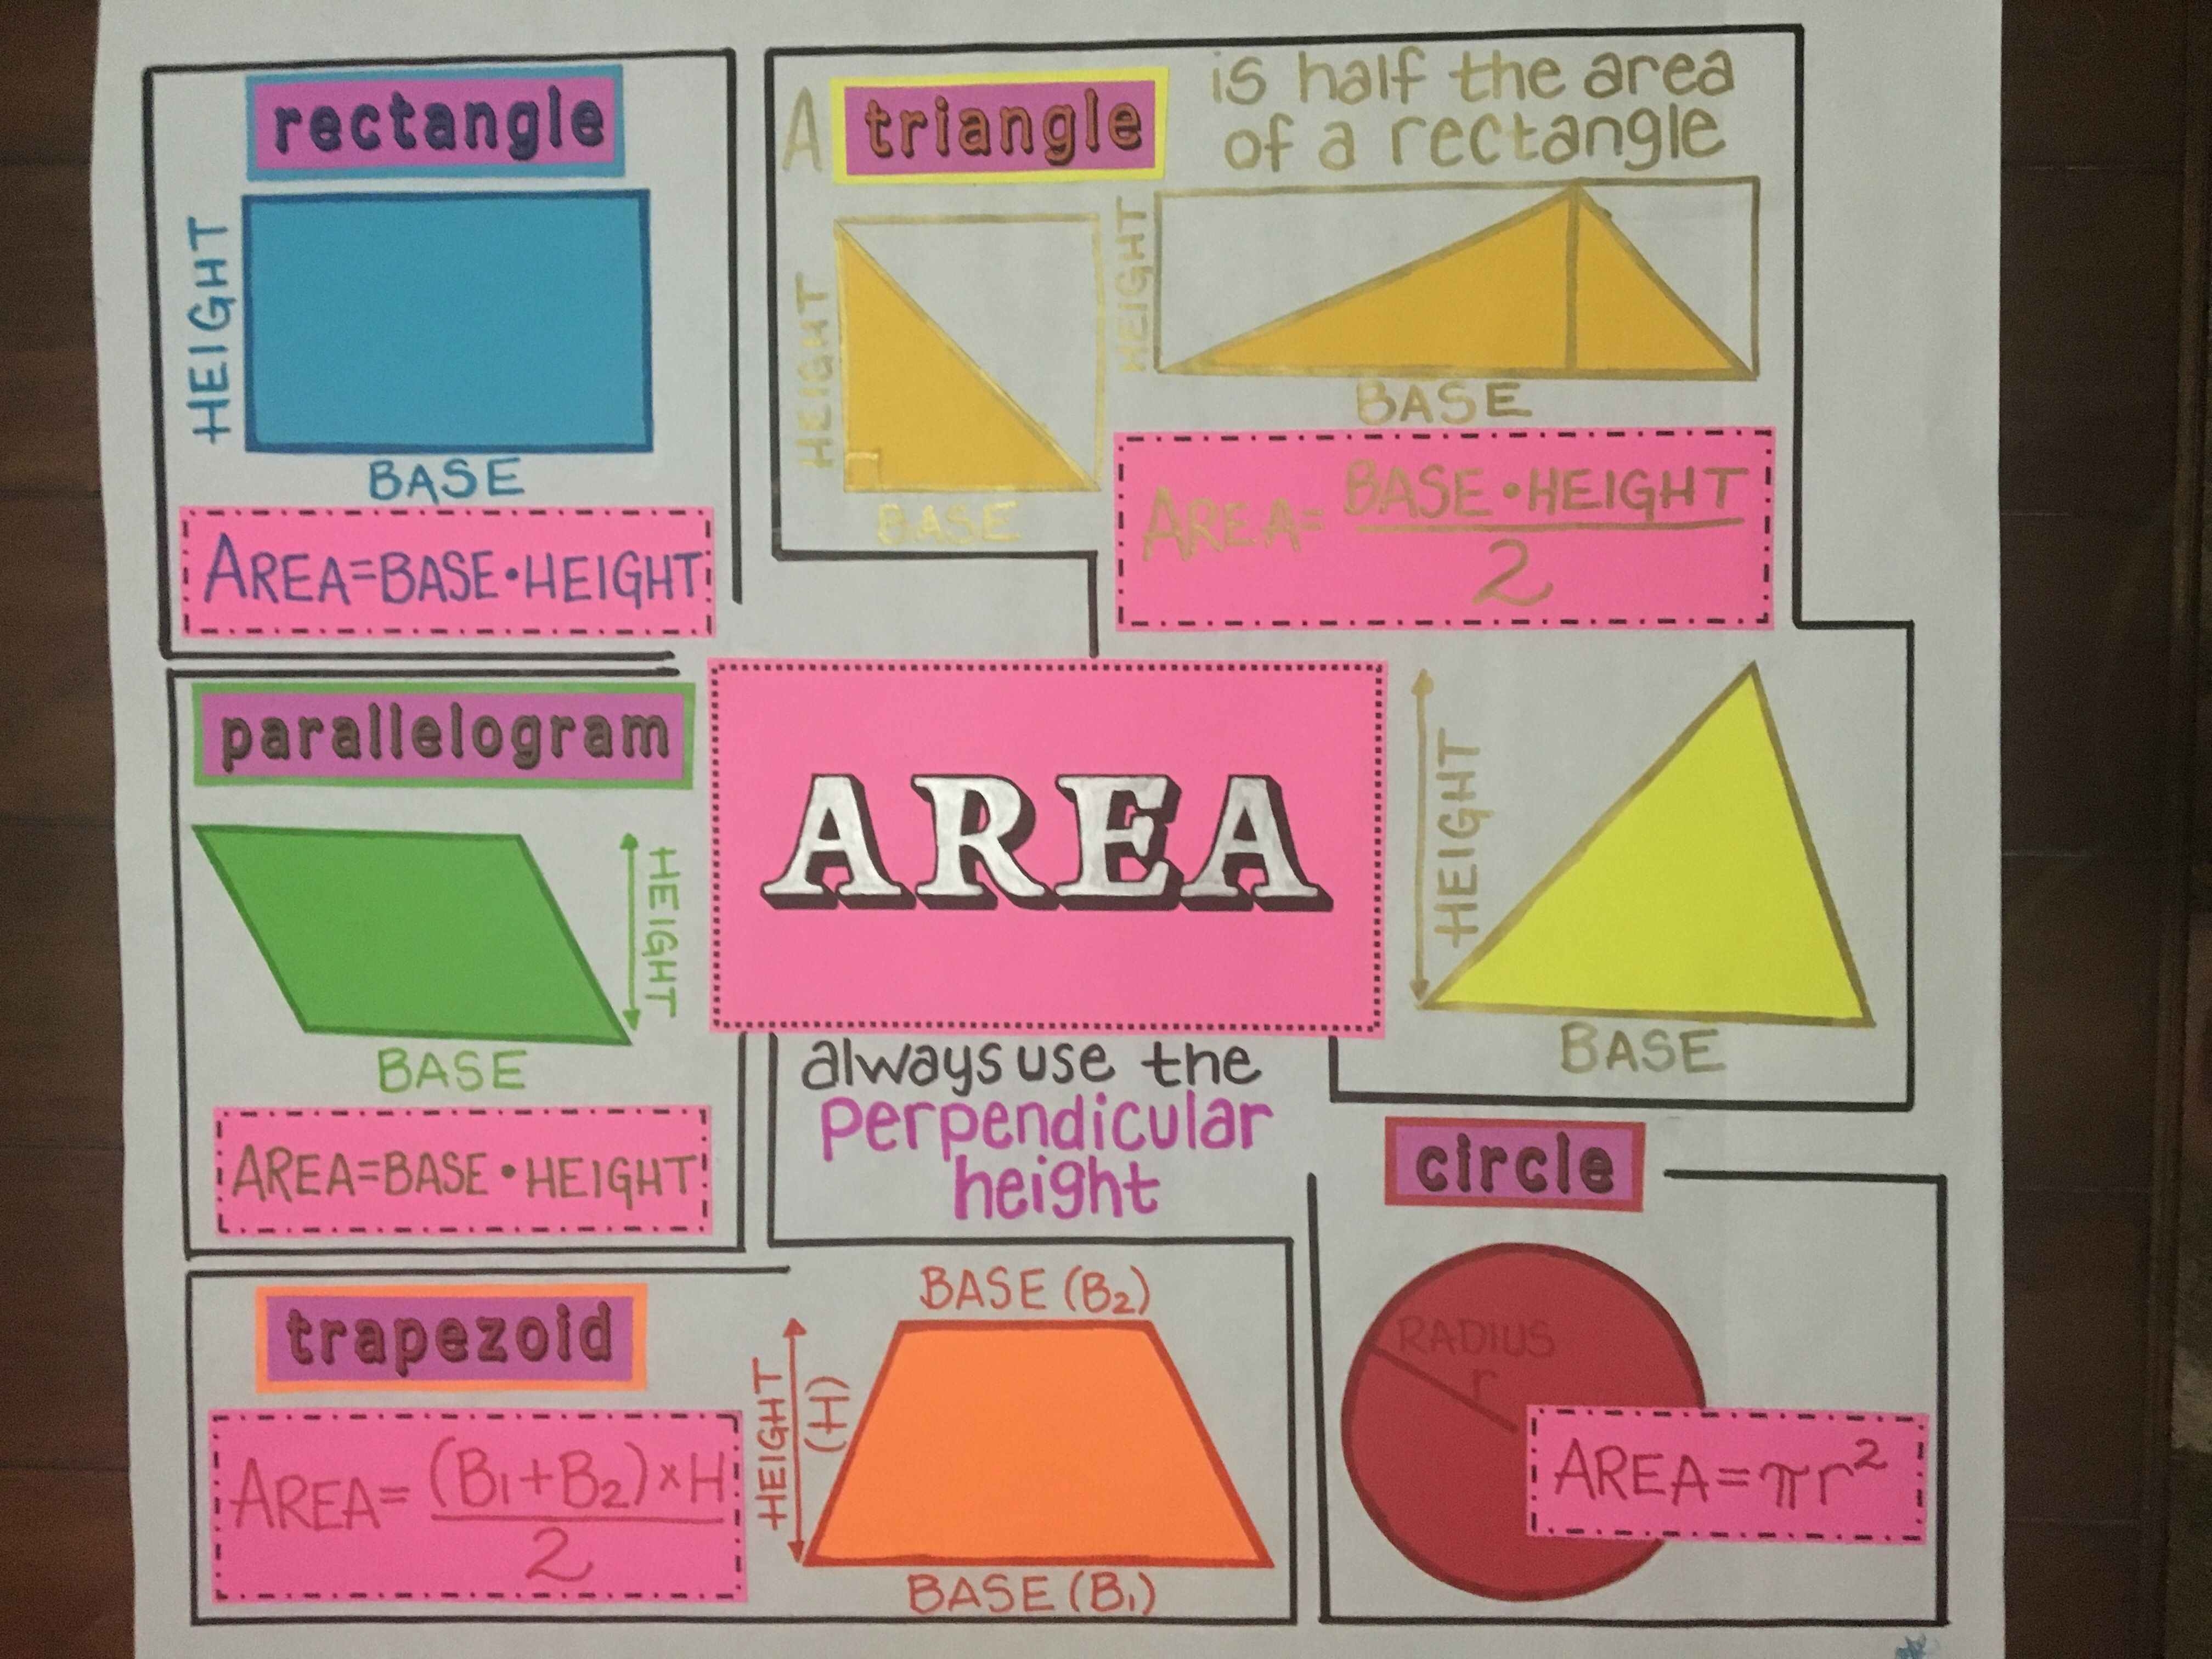 medium resolution of Colorful visual representation of area formulas for rectangles